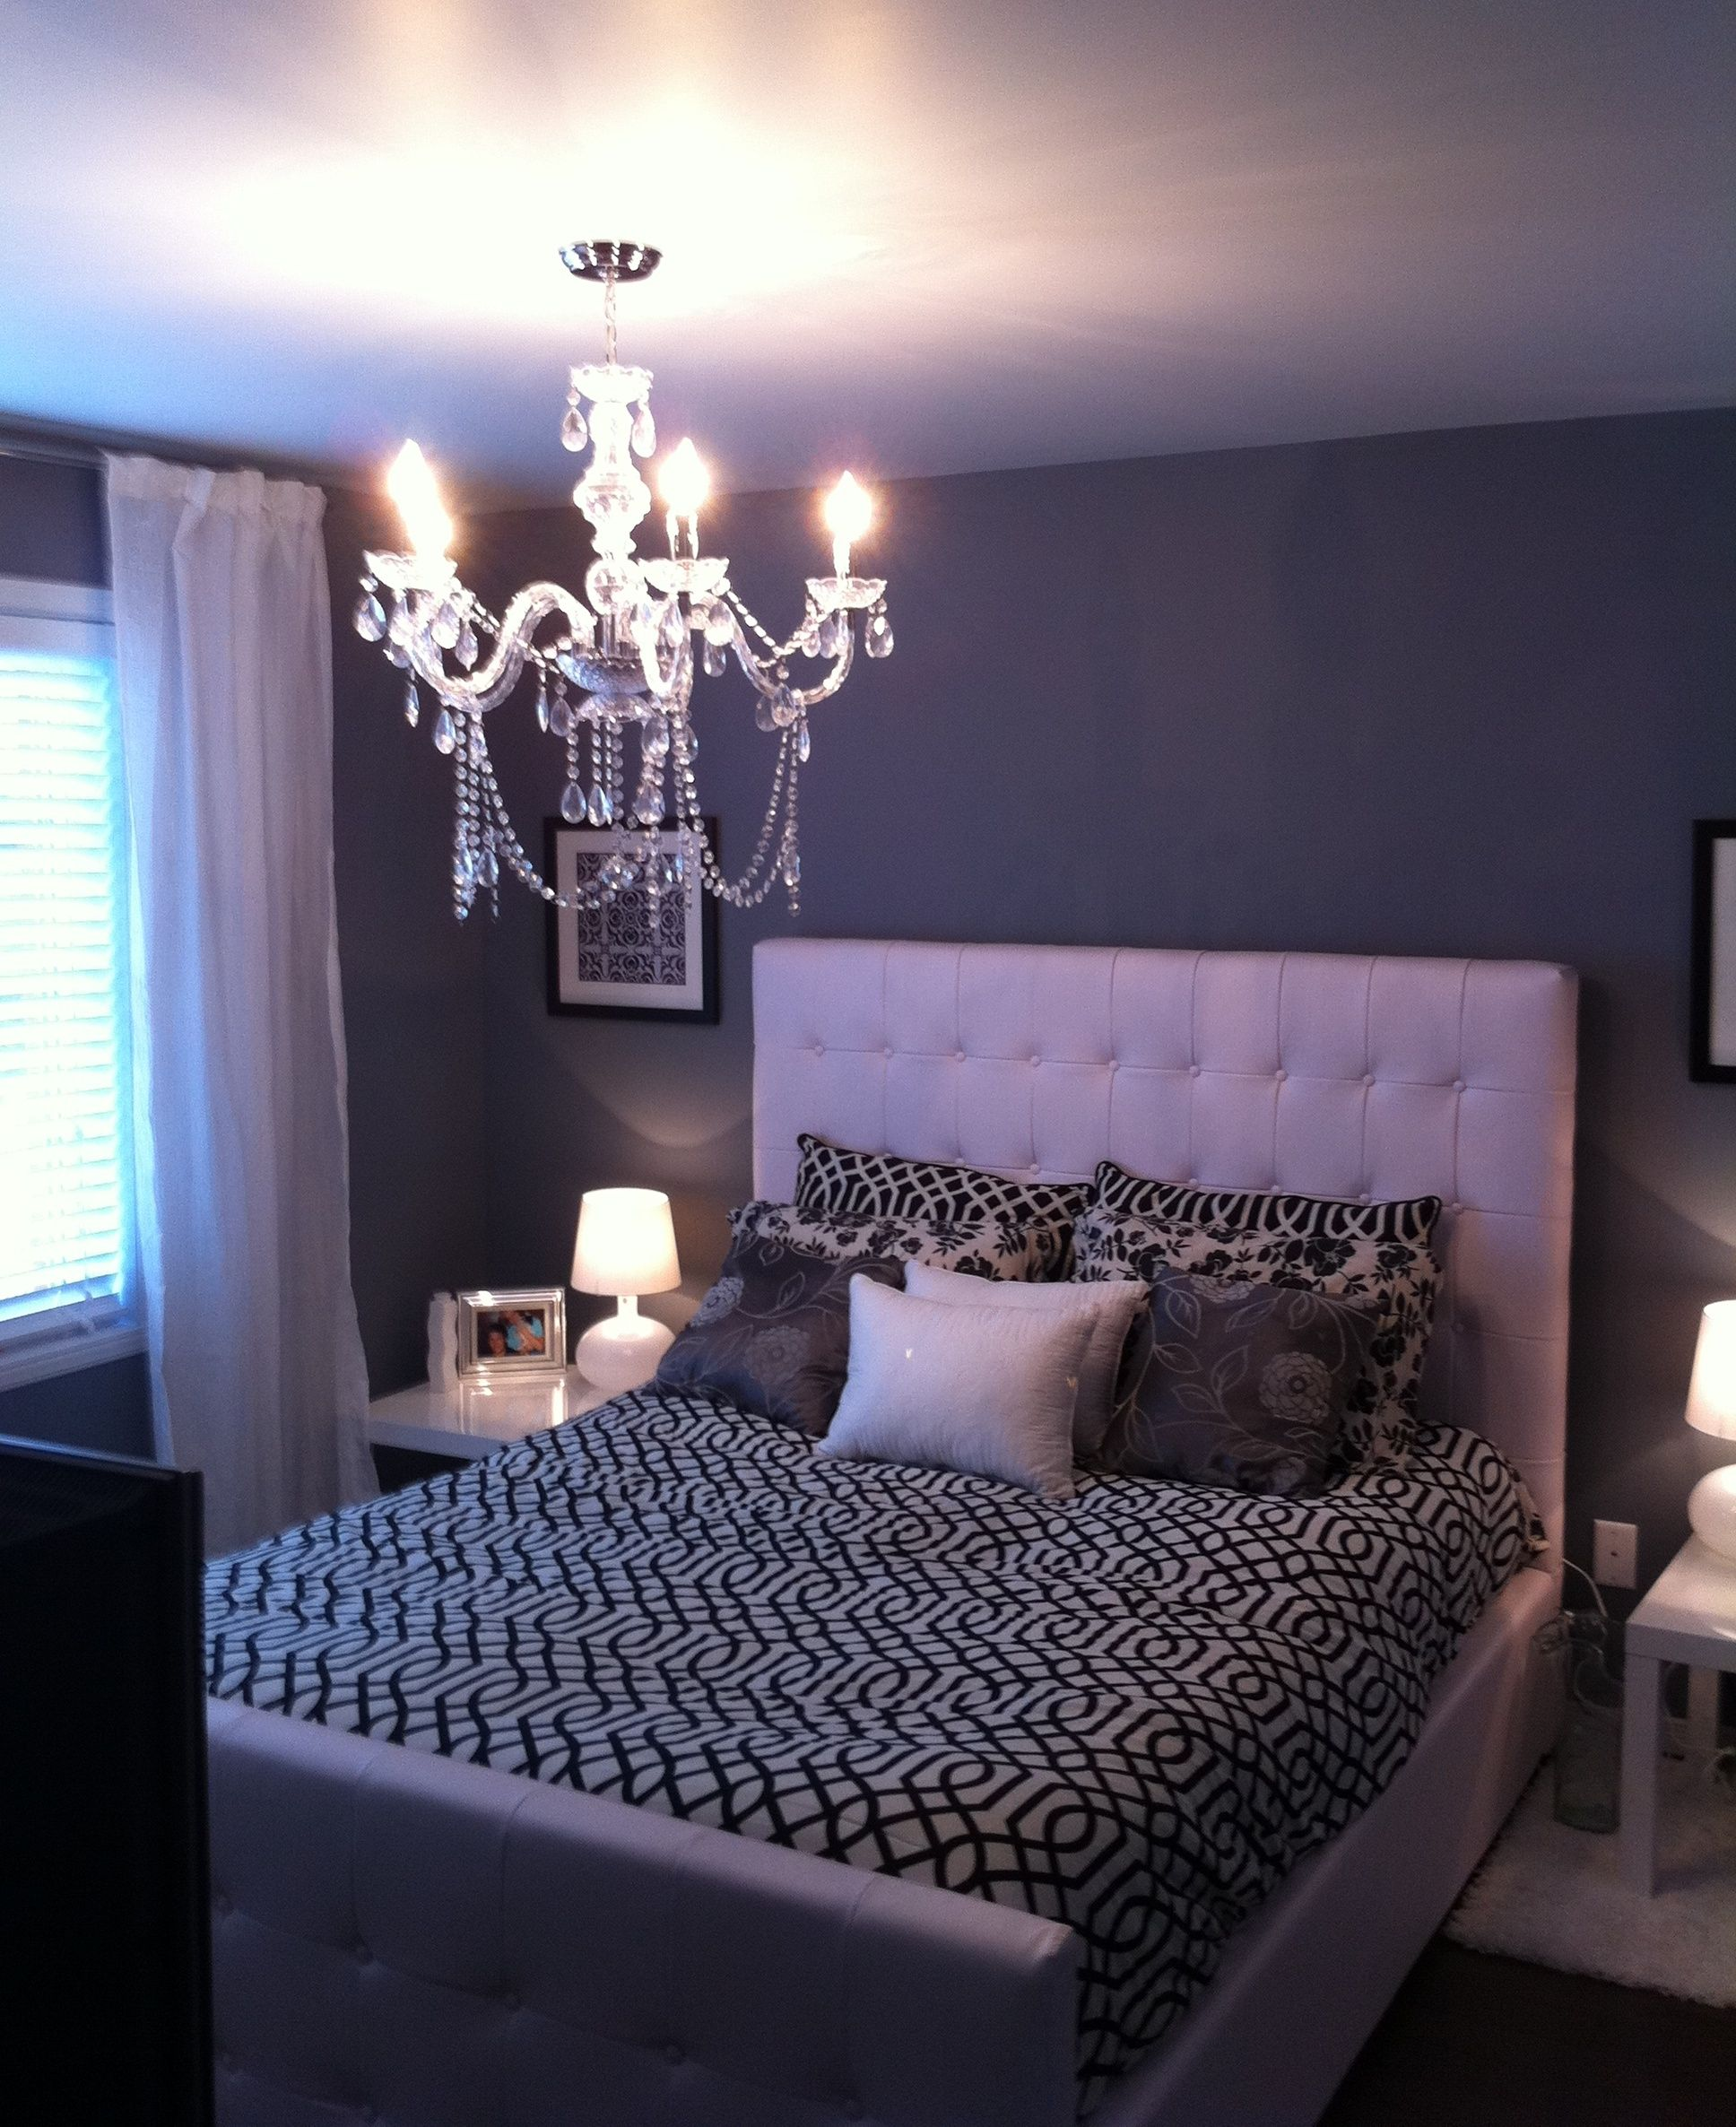 Small bedroom chandelier lighting small bedroom pinterest small bedroom chandelier lighting arubaitofo Image collections